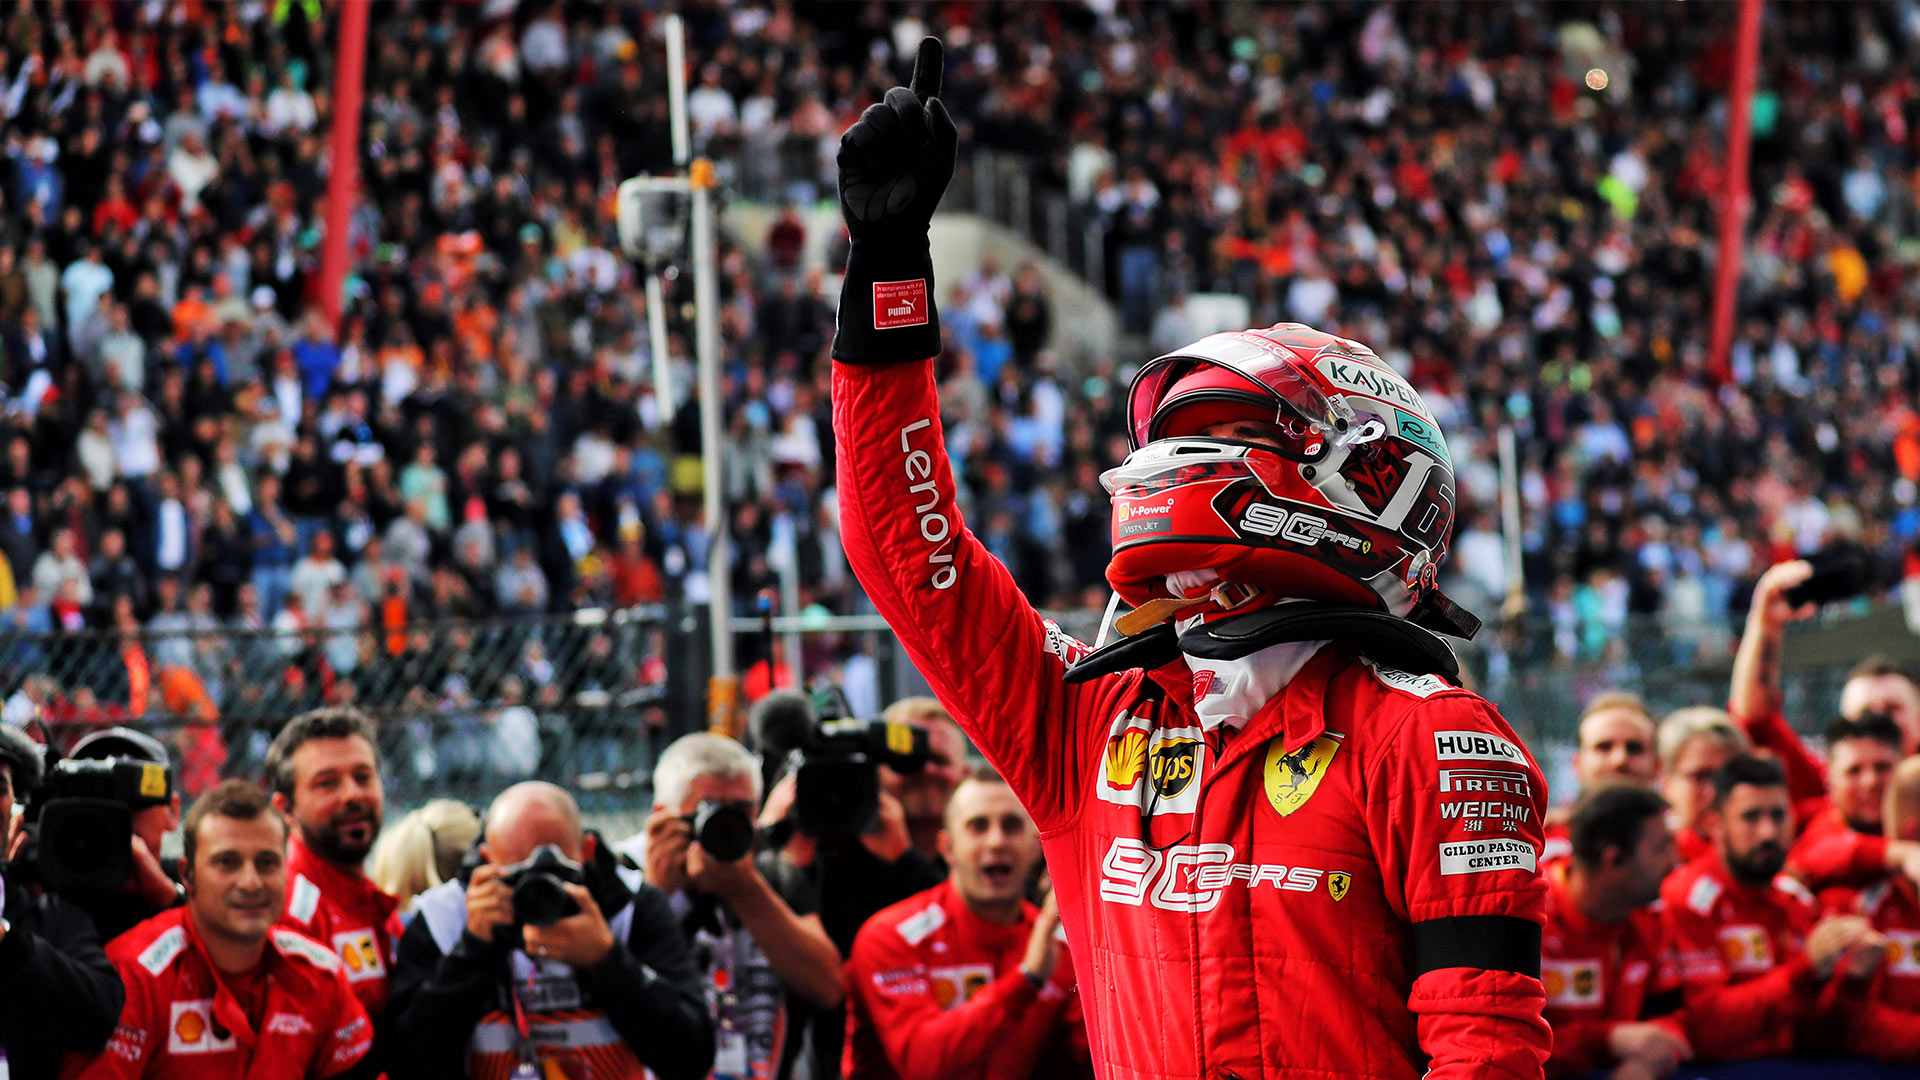 Charles Leclerc Expecting A Great Welcome From Tifosi At